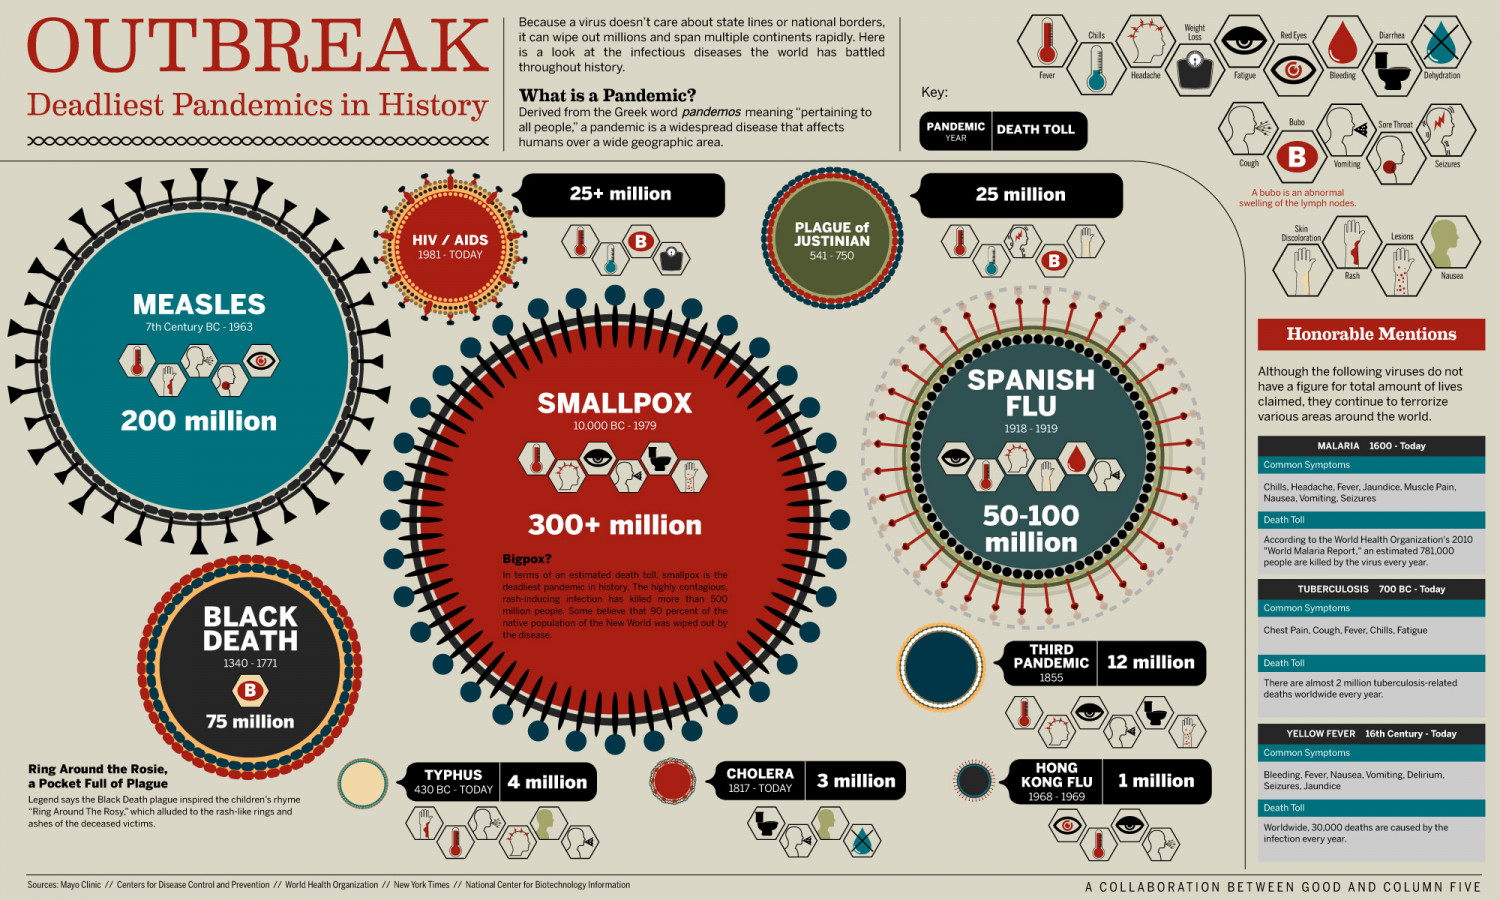 Outbreak Infographic